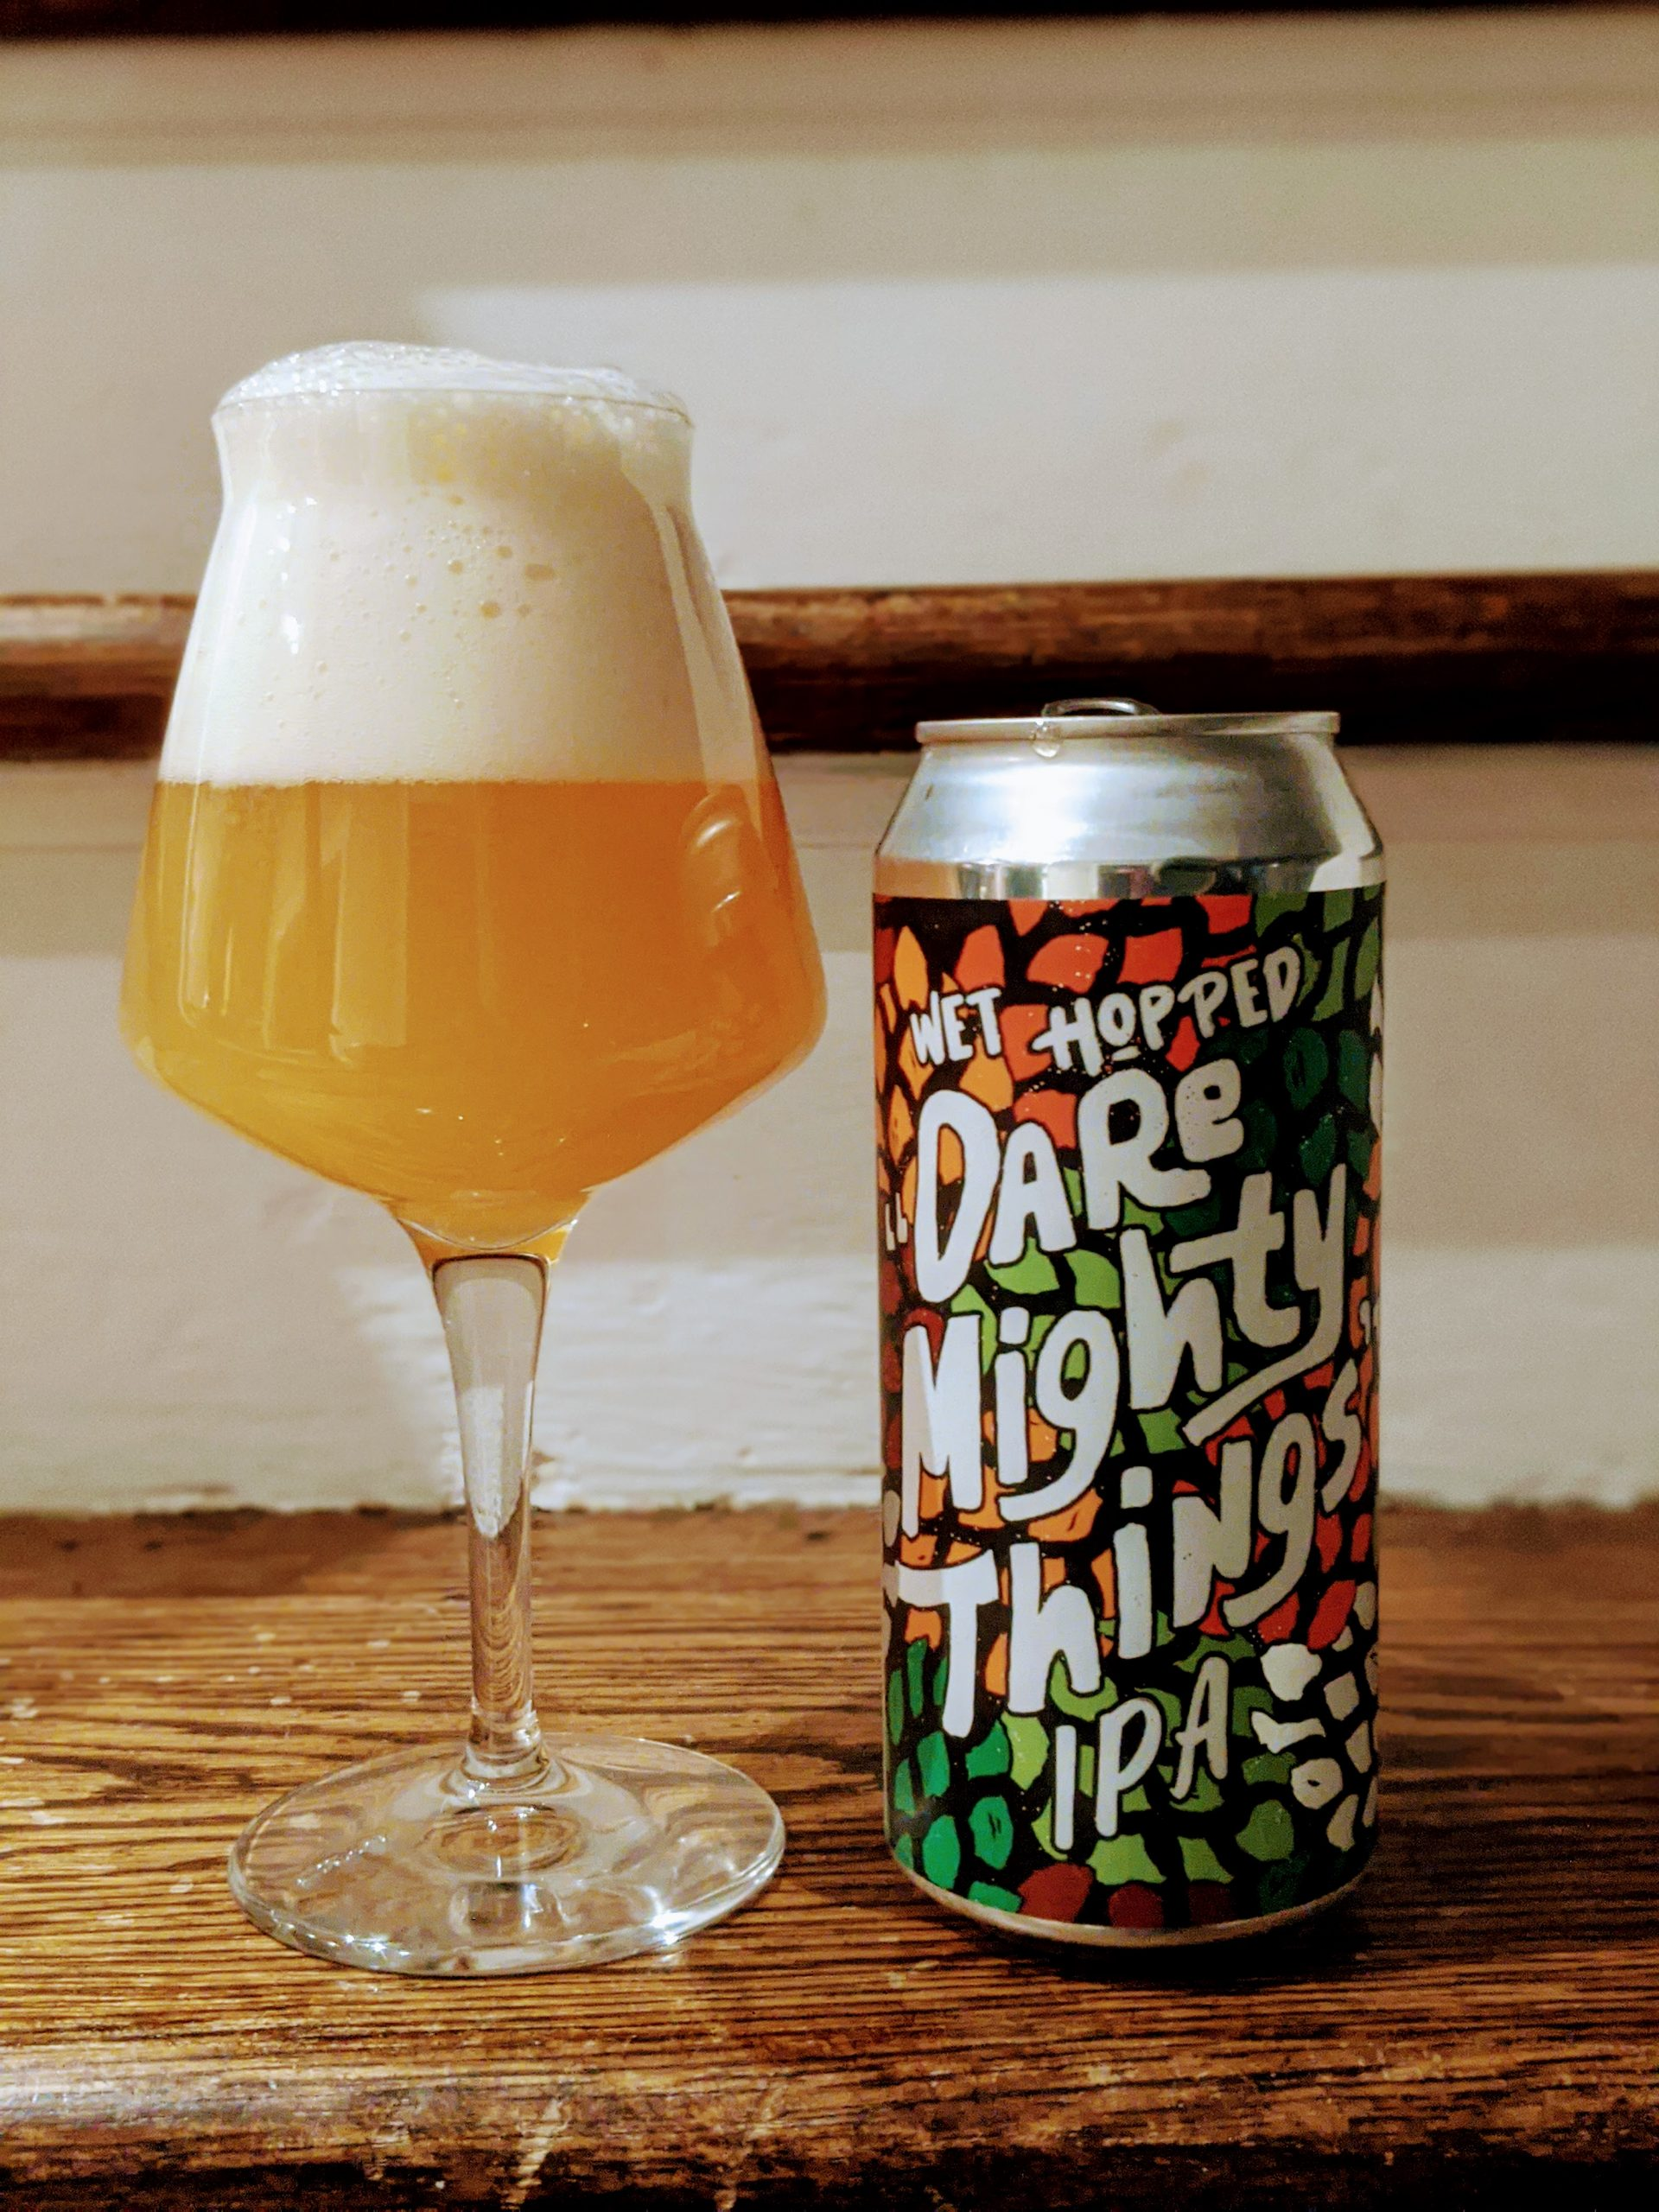 Dare Mighty Things - Wet Hopped